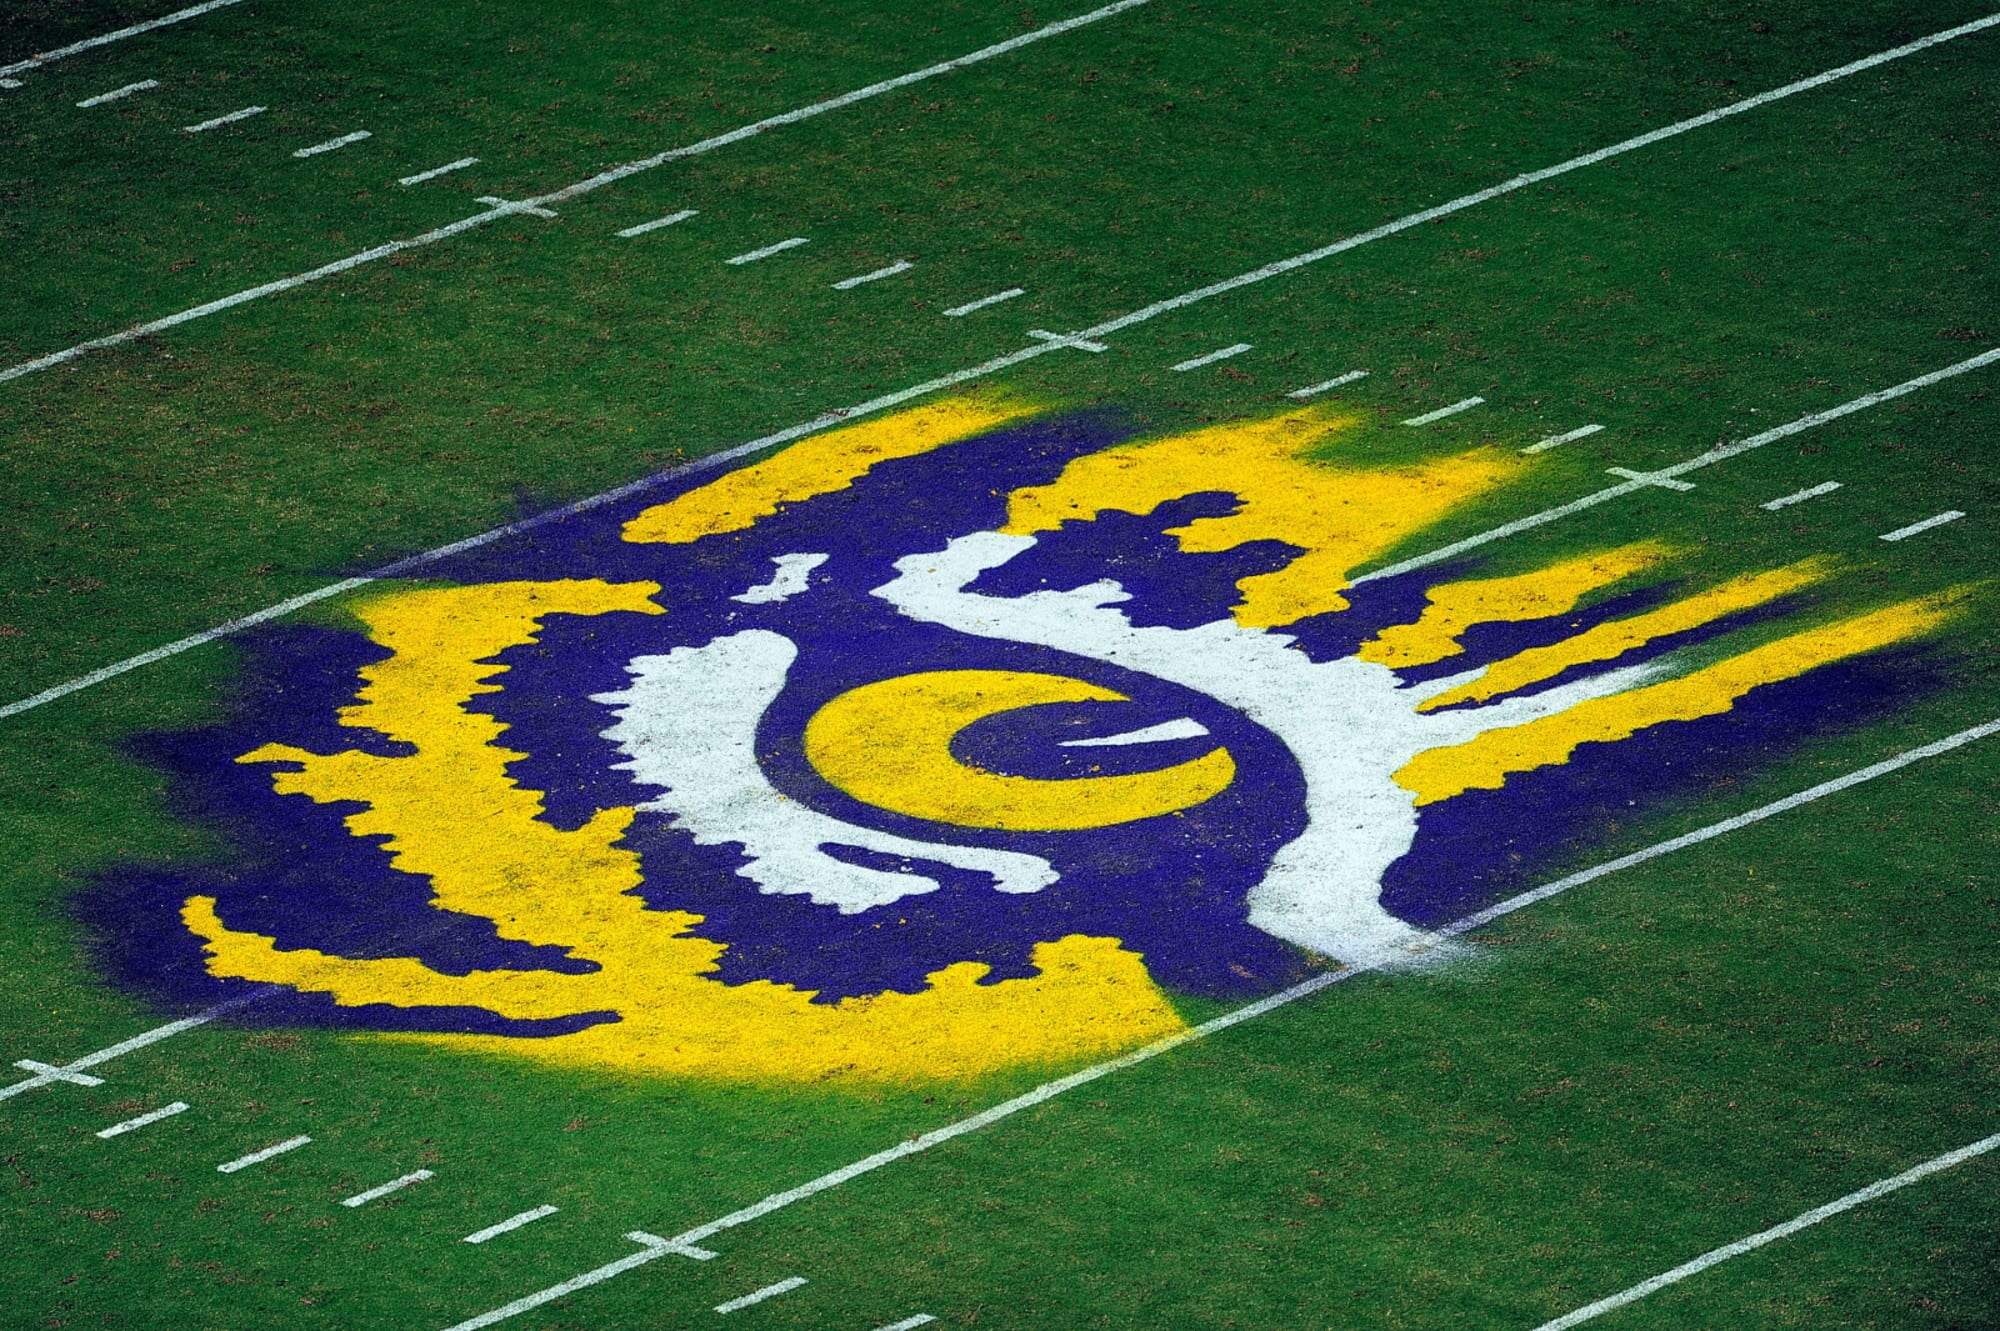 Analyst Predicts Lsu Football Will Land Former Tennessee Football Commit (insert witty comment about self here). land former tennessee football commit